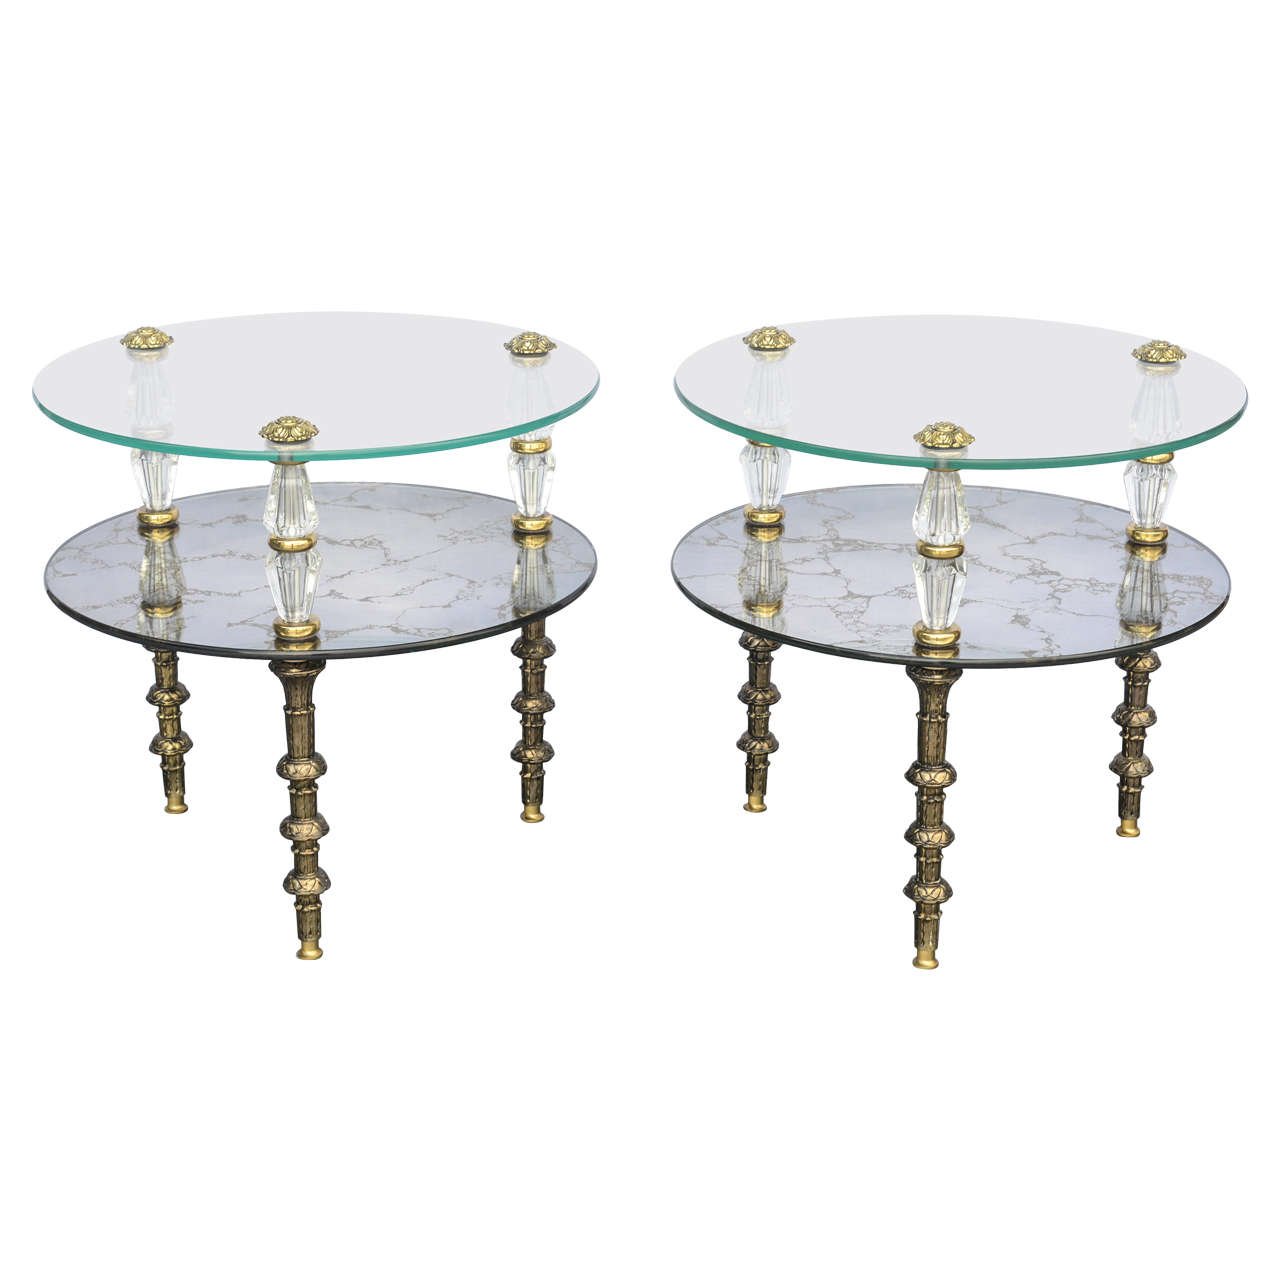 hollywood regency, goran belgium glass end tables for sale at 1stdibs